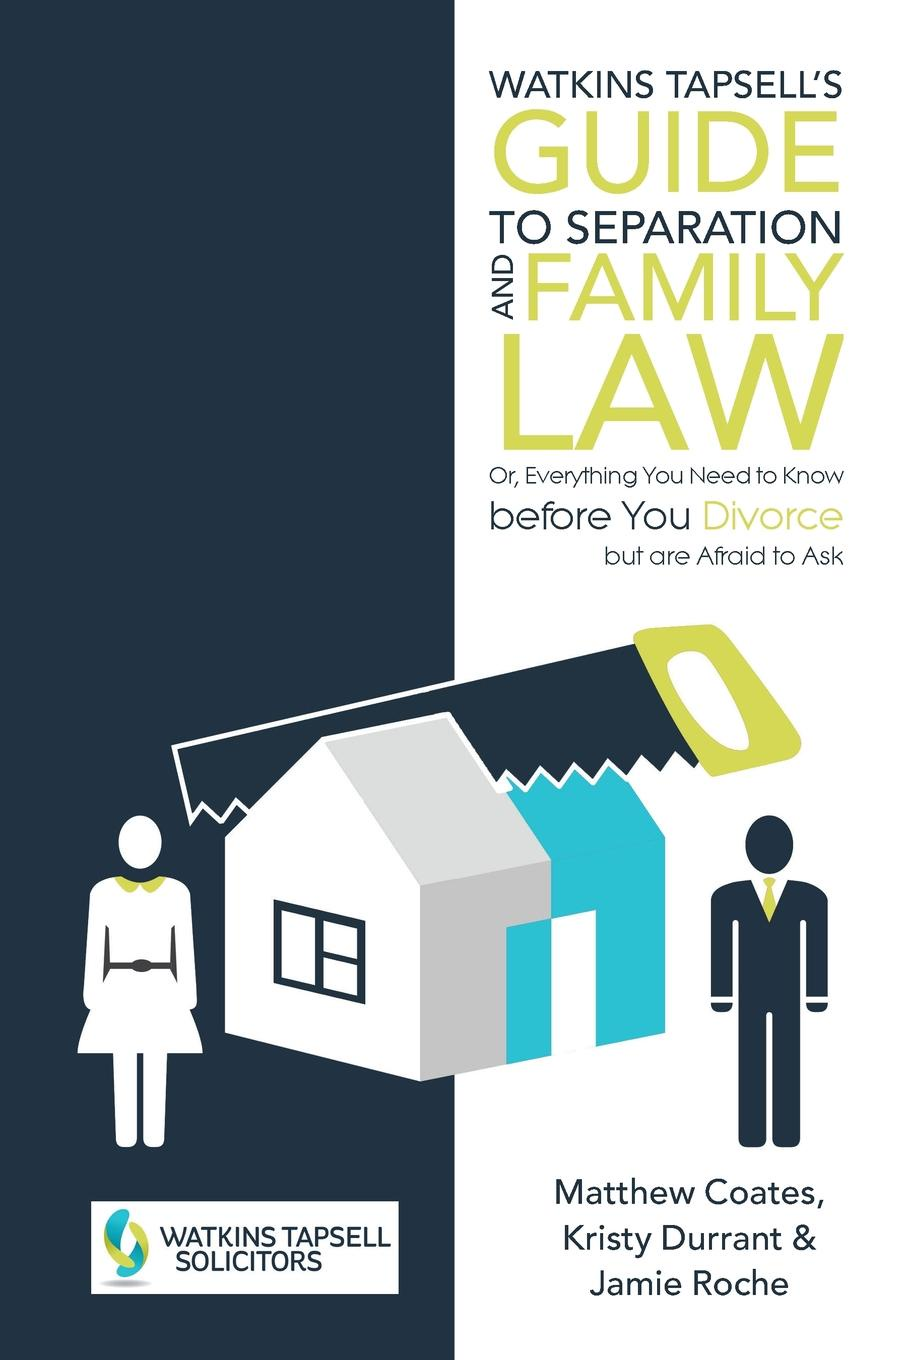 Matthew Coates, Kristy, Jamie Watkins Tapsell.s Guide to Separation and Family Law. or, Everything You Need to Know before You Divorce but are Afraid to Ask pete matthew the meaningful money handbook everything you need to know and everything you need to do to secure your financial future